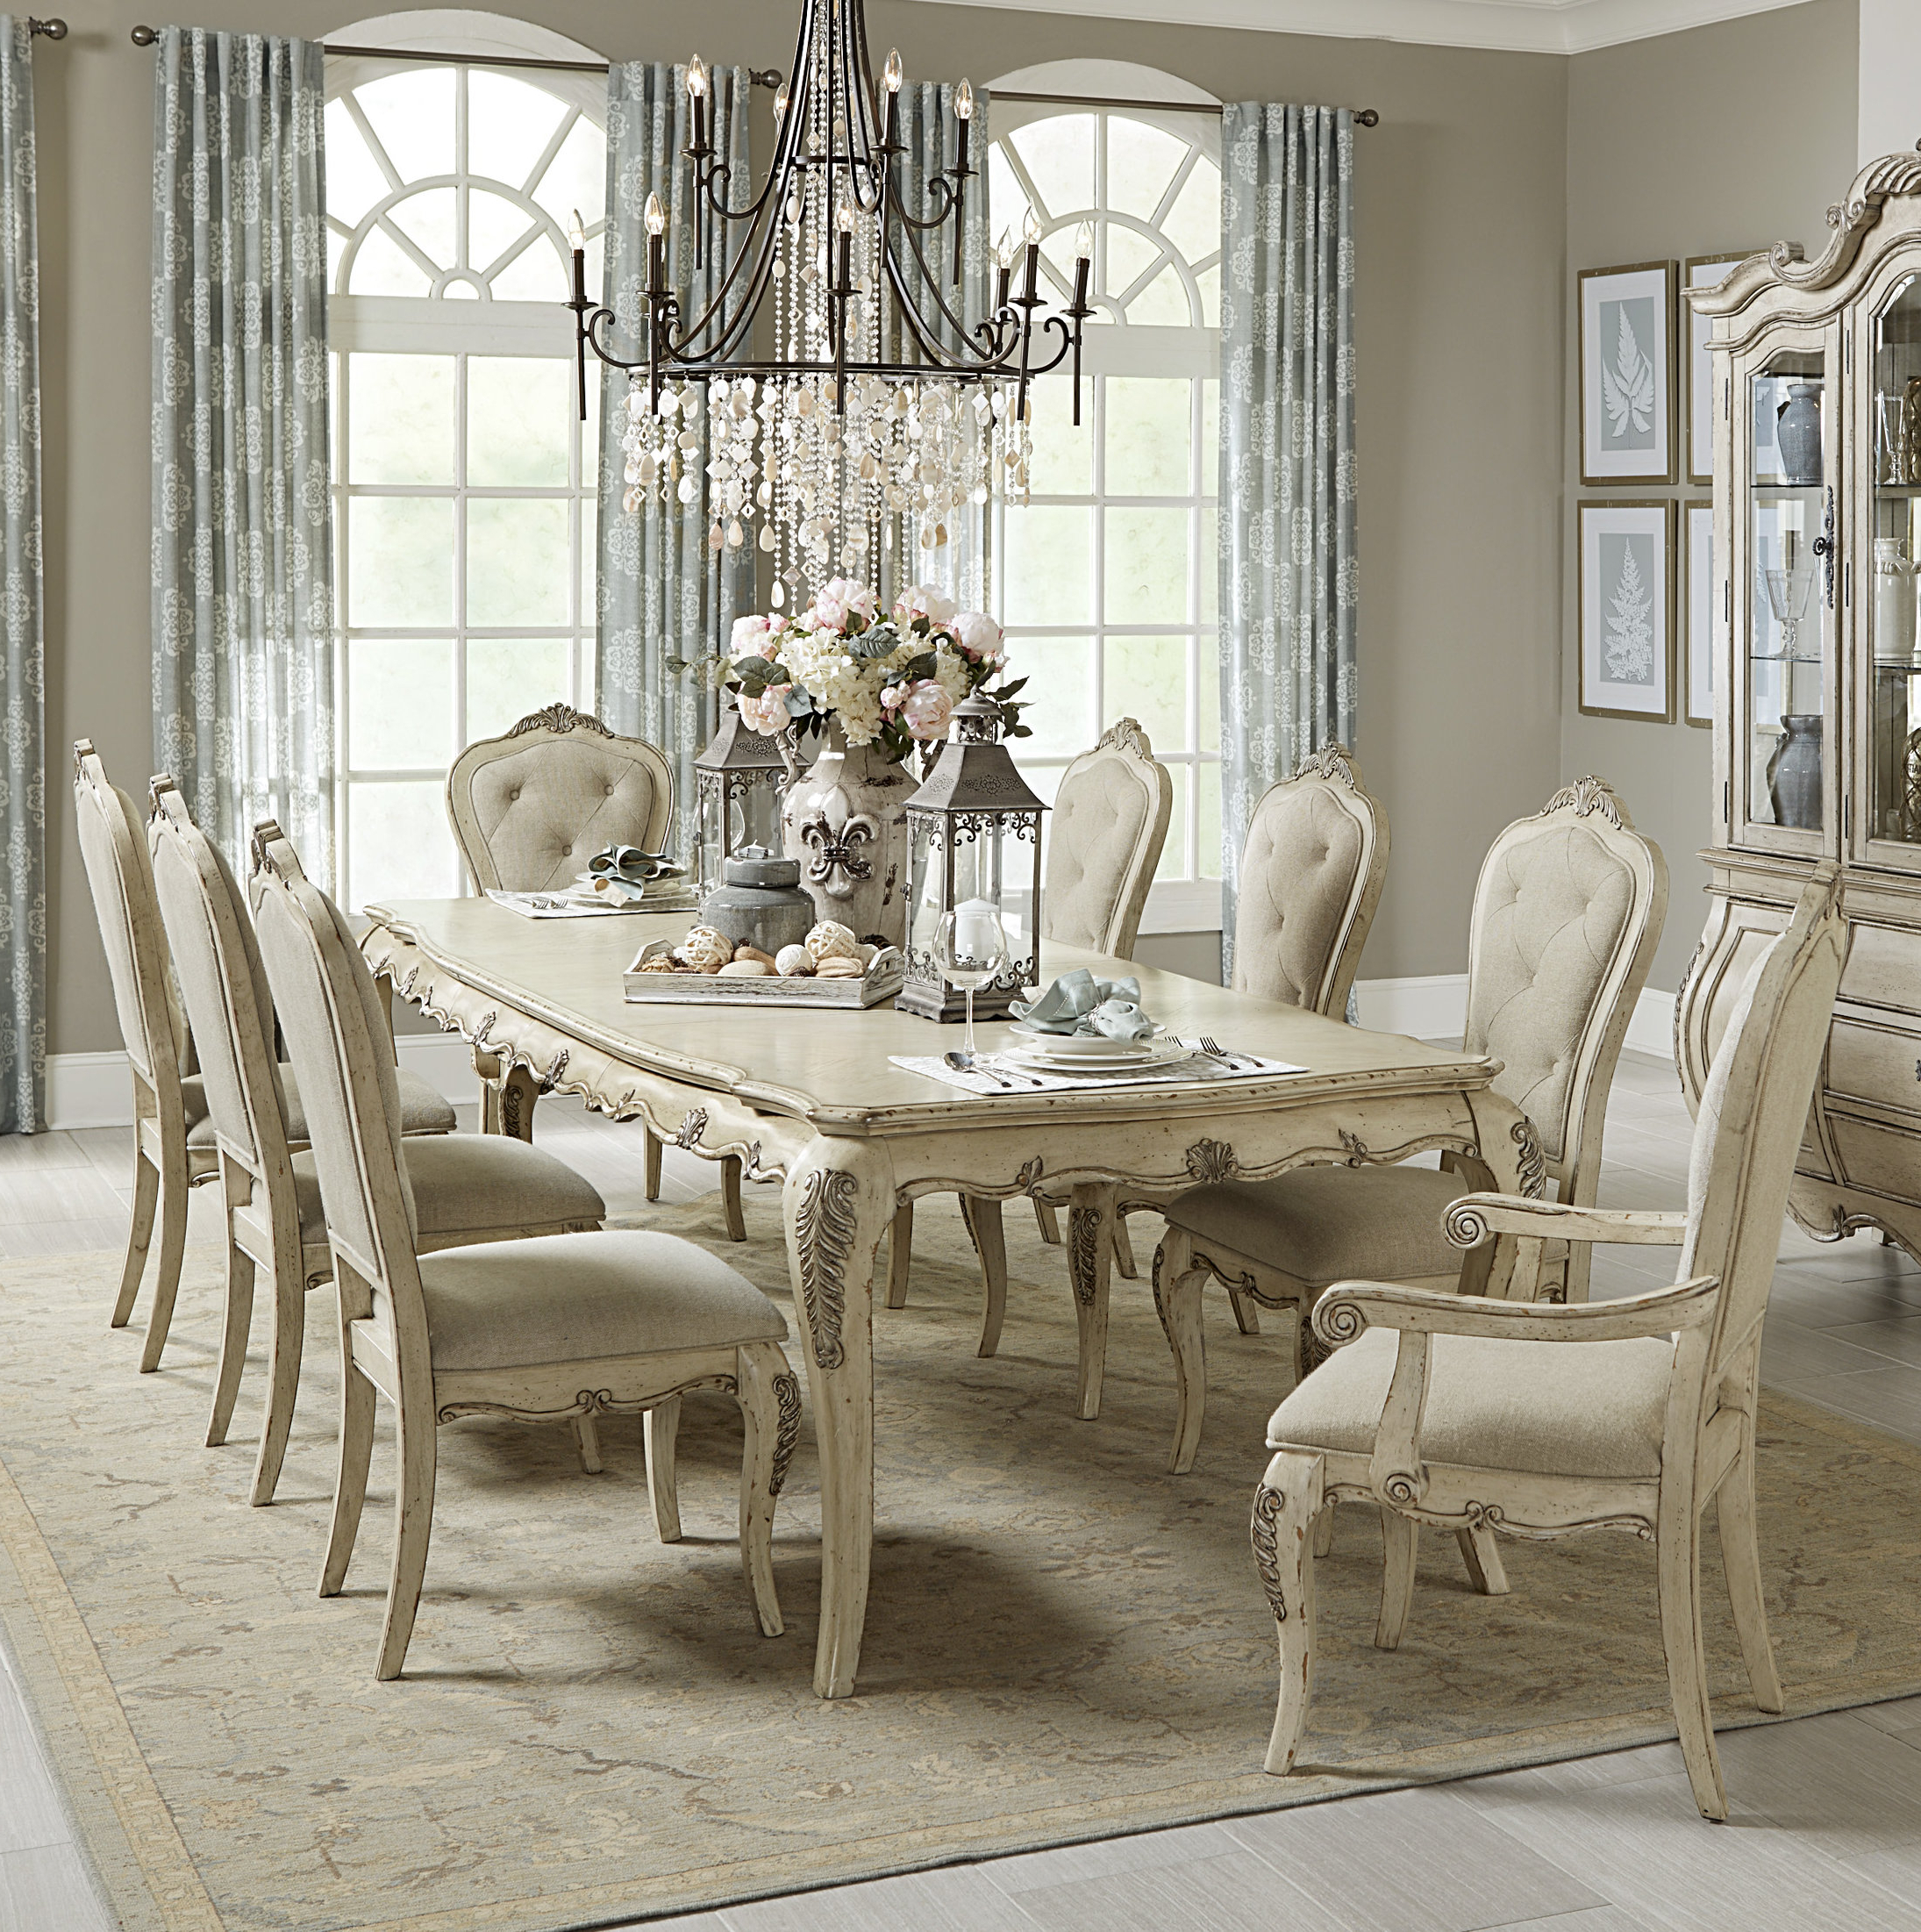 Mitzel 3 Piece Dining Sets Regarding Newest Mitzel Dining Table (View 11 of 20)